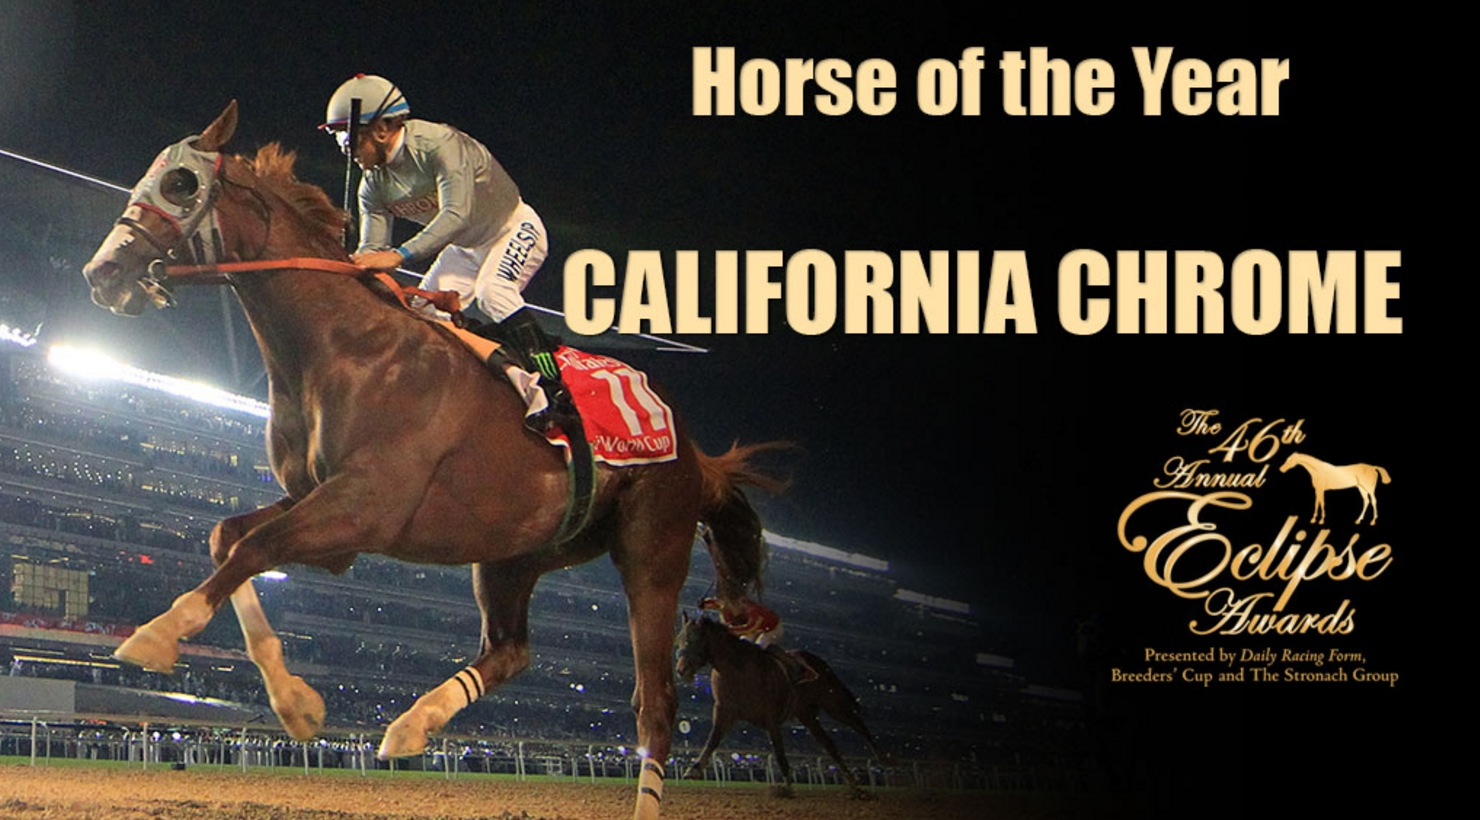 California Chrome Wins 2016 Horse Of The Year